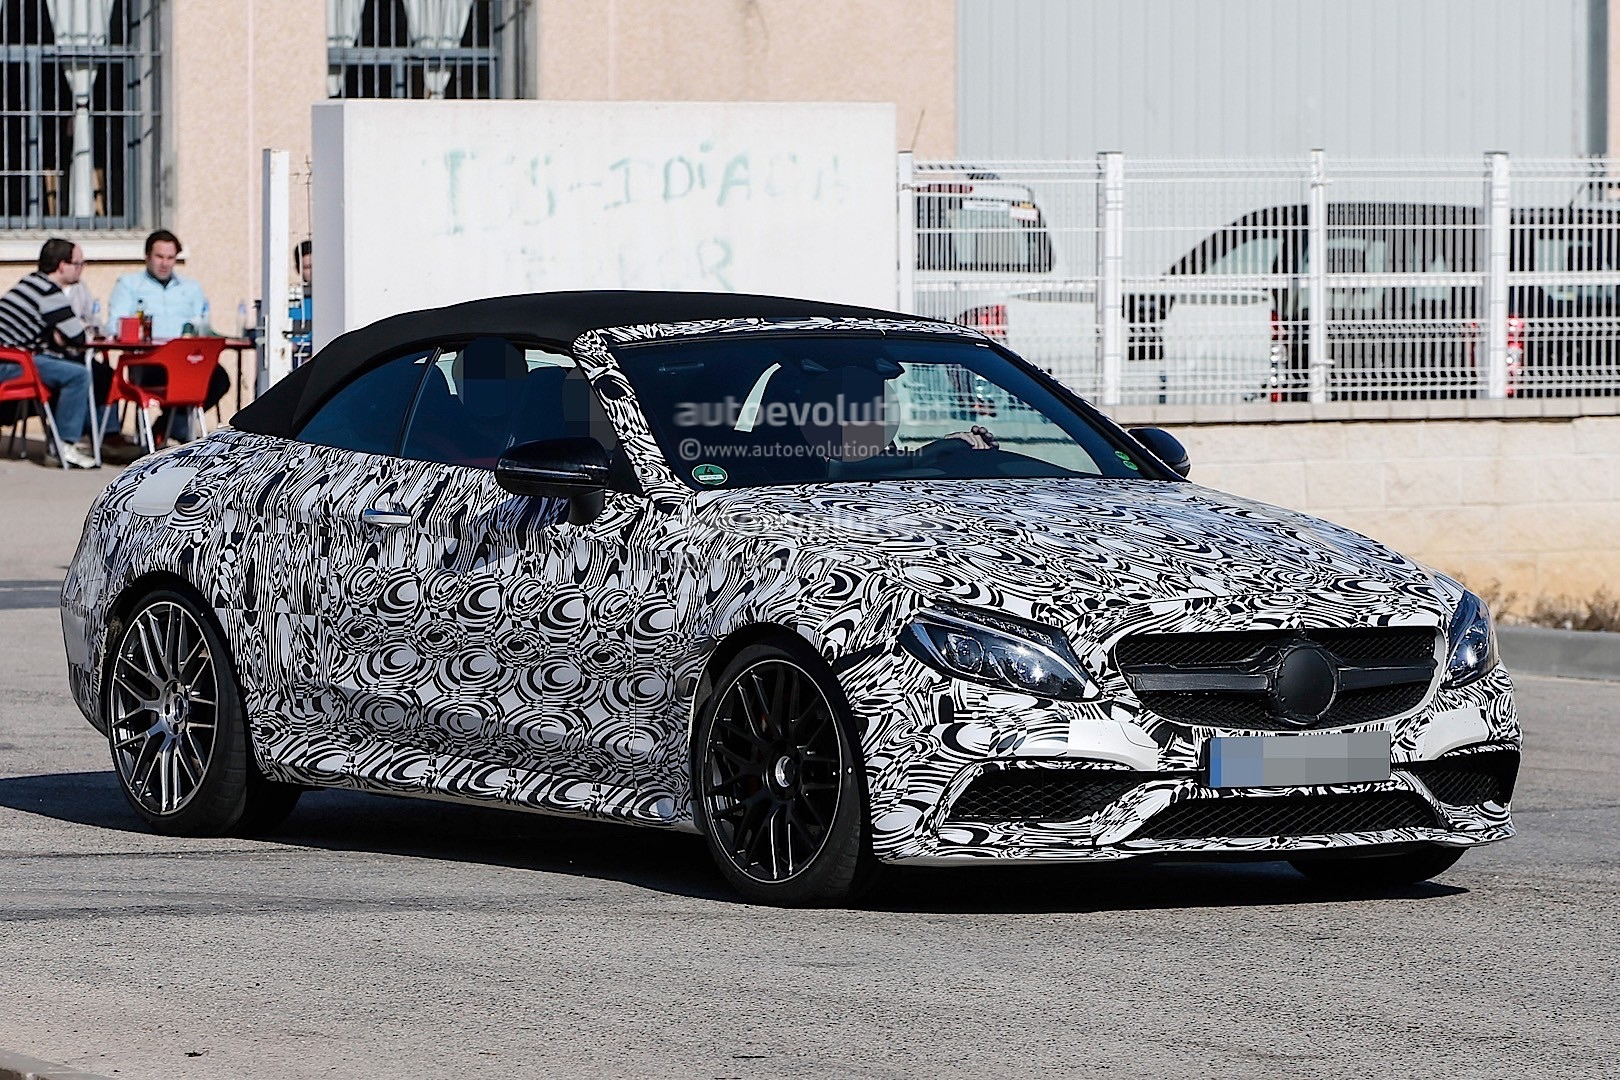 https://s1.cdn.autoevolution.com/images/news/2017-mercedes-amg-c63-cabriolet-is-wearing-mismatched-wheels-in-new-spyshots-104274_1.jpg